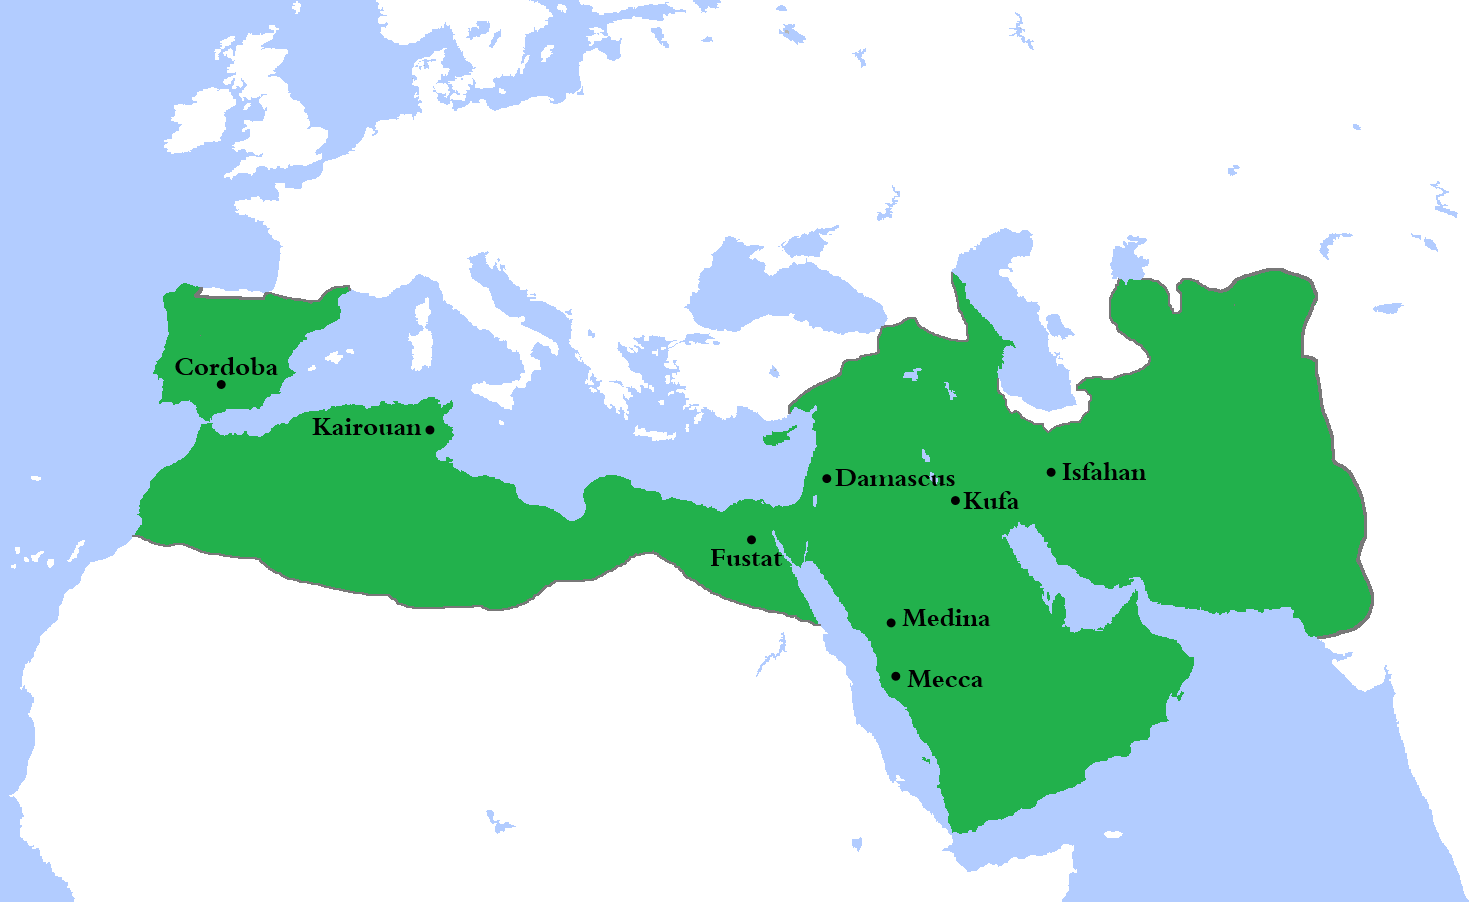 https://upload.wikimedia.org/wikipedia/commons/5/5b/Umayyad750ADloc.png